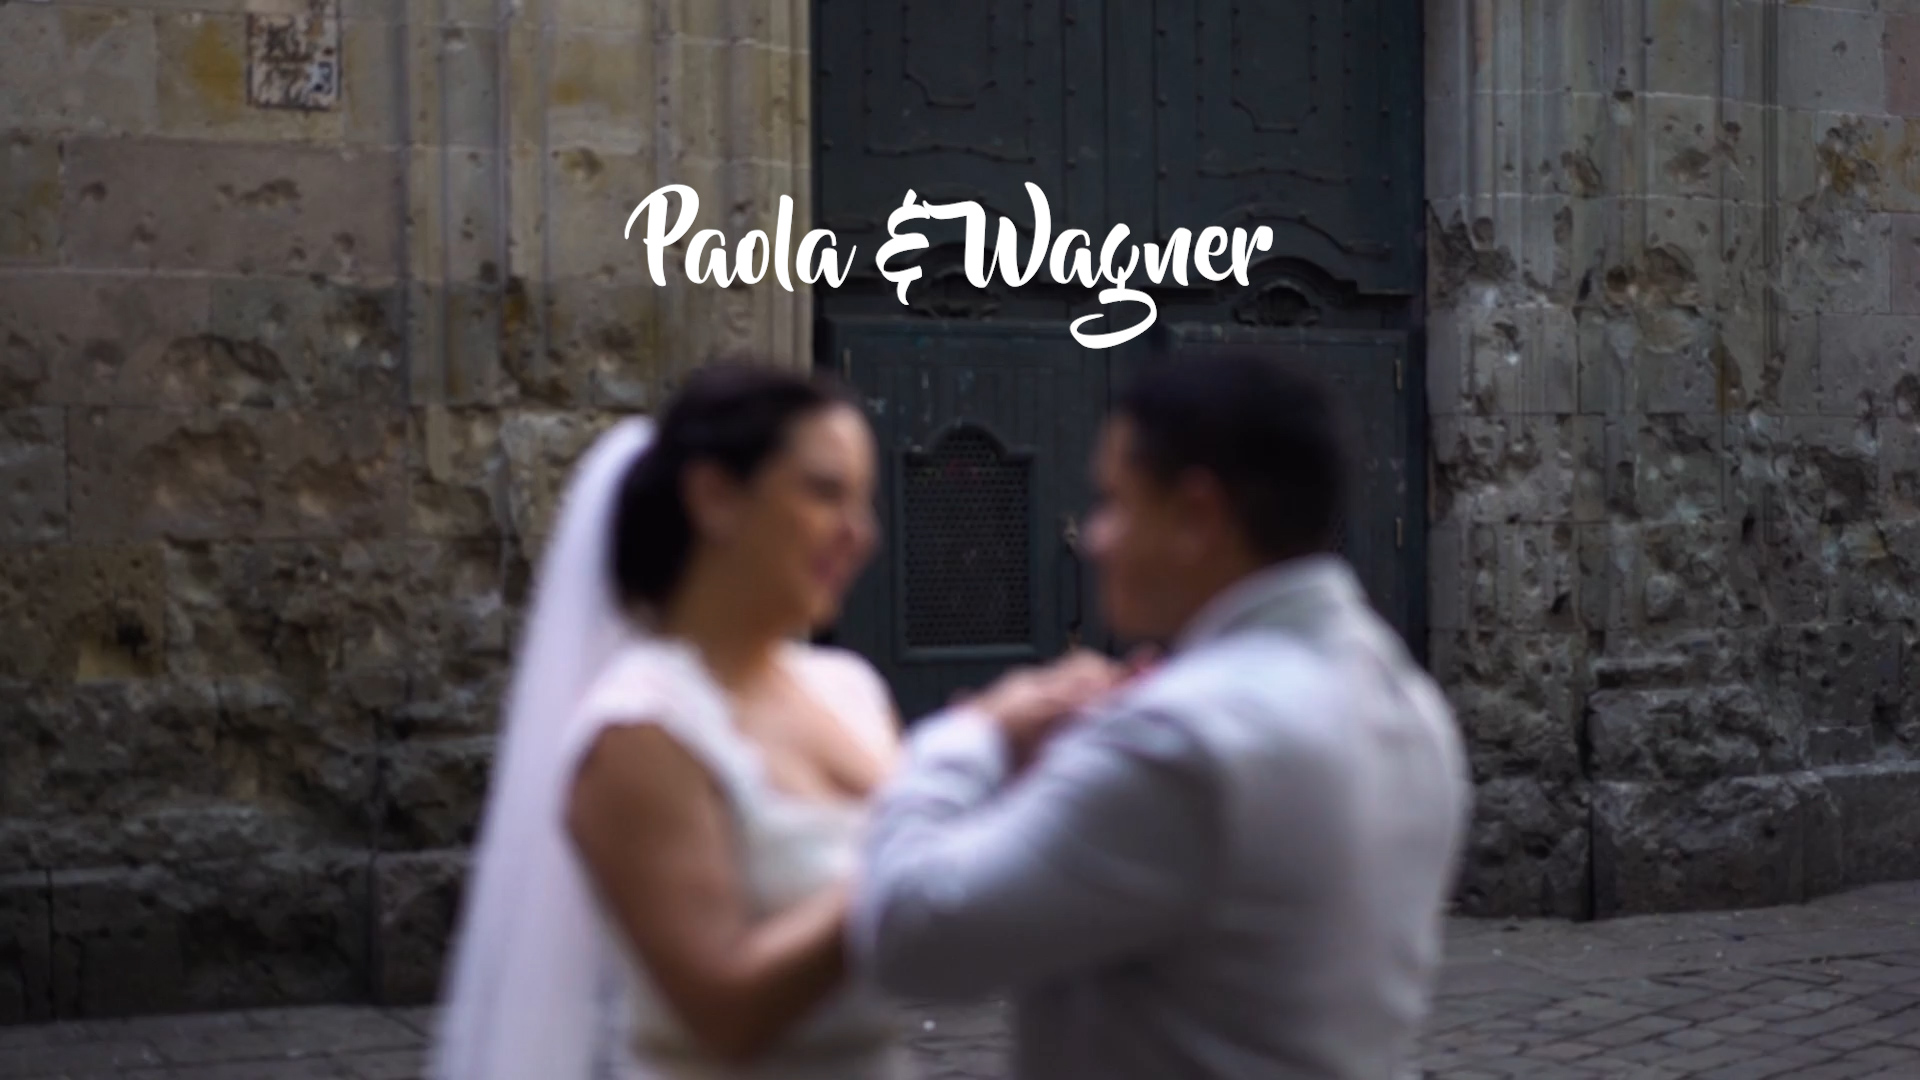 elopement video Paola & Wagner